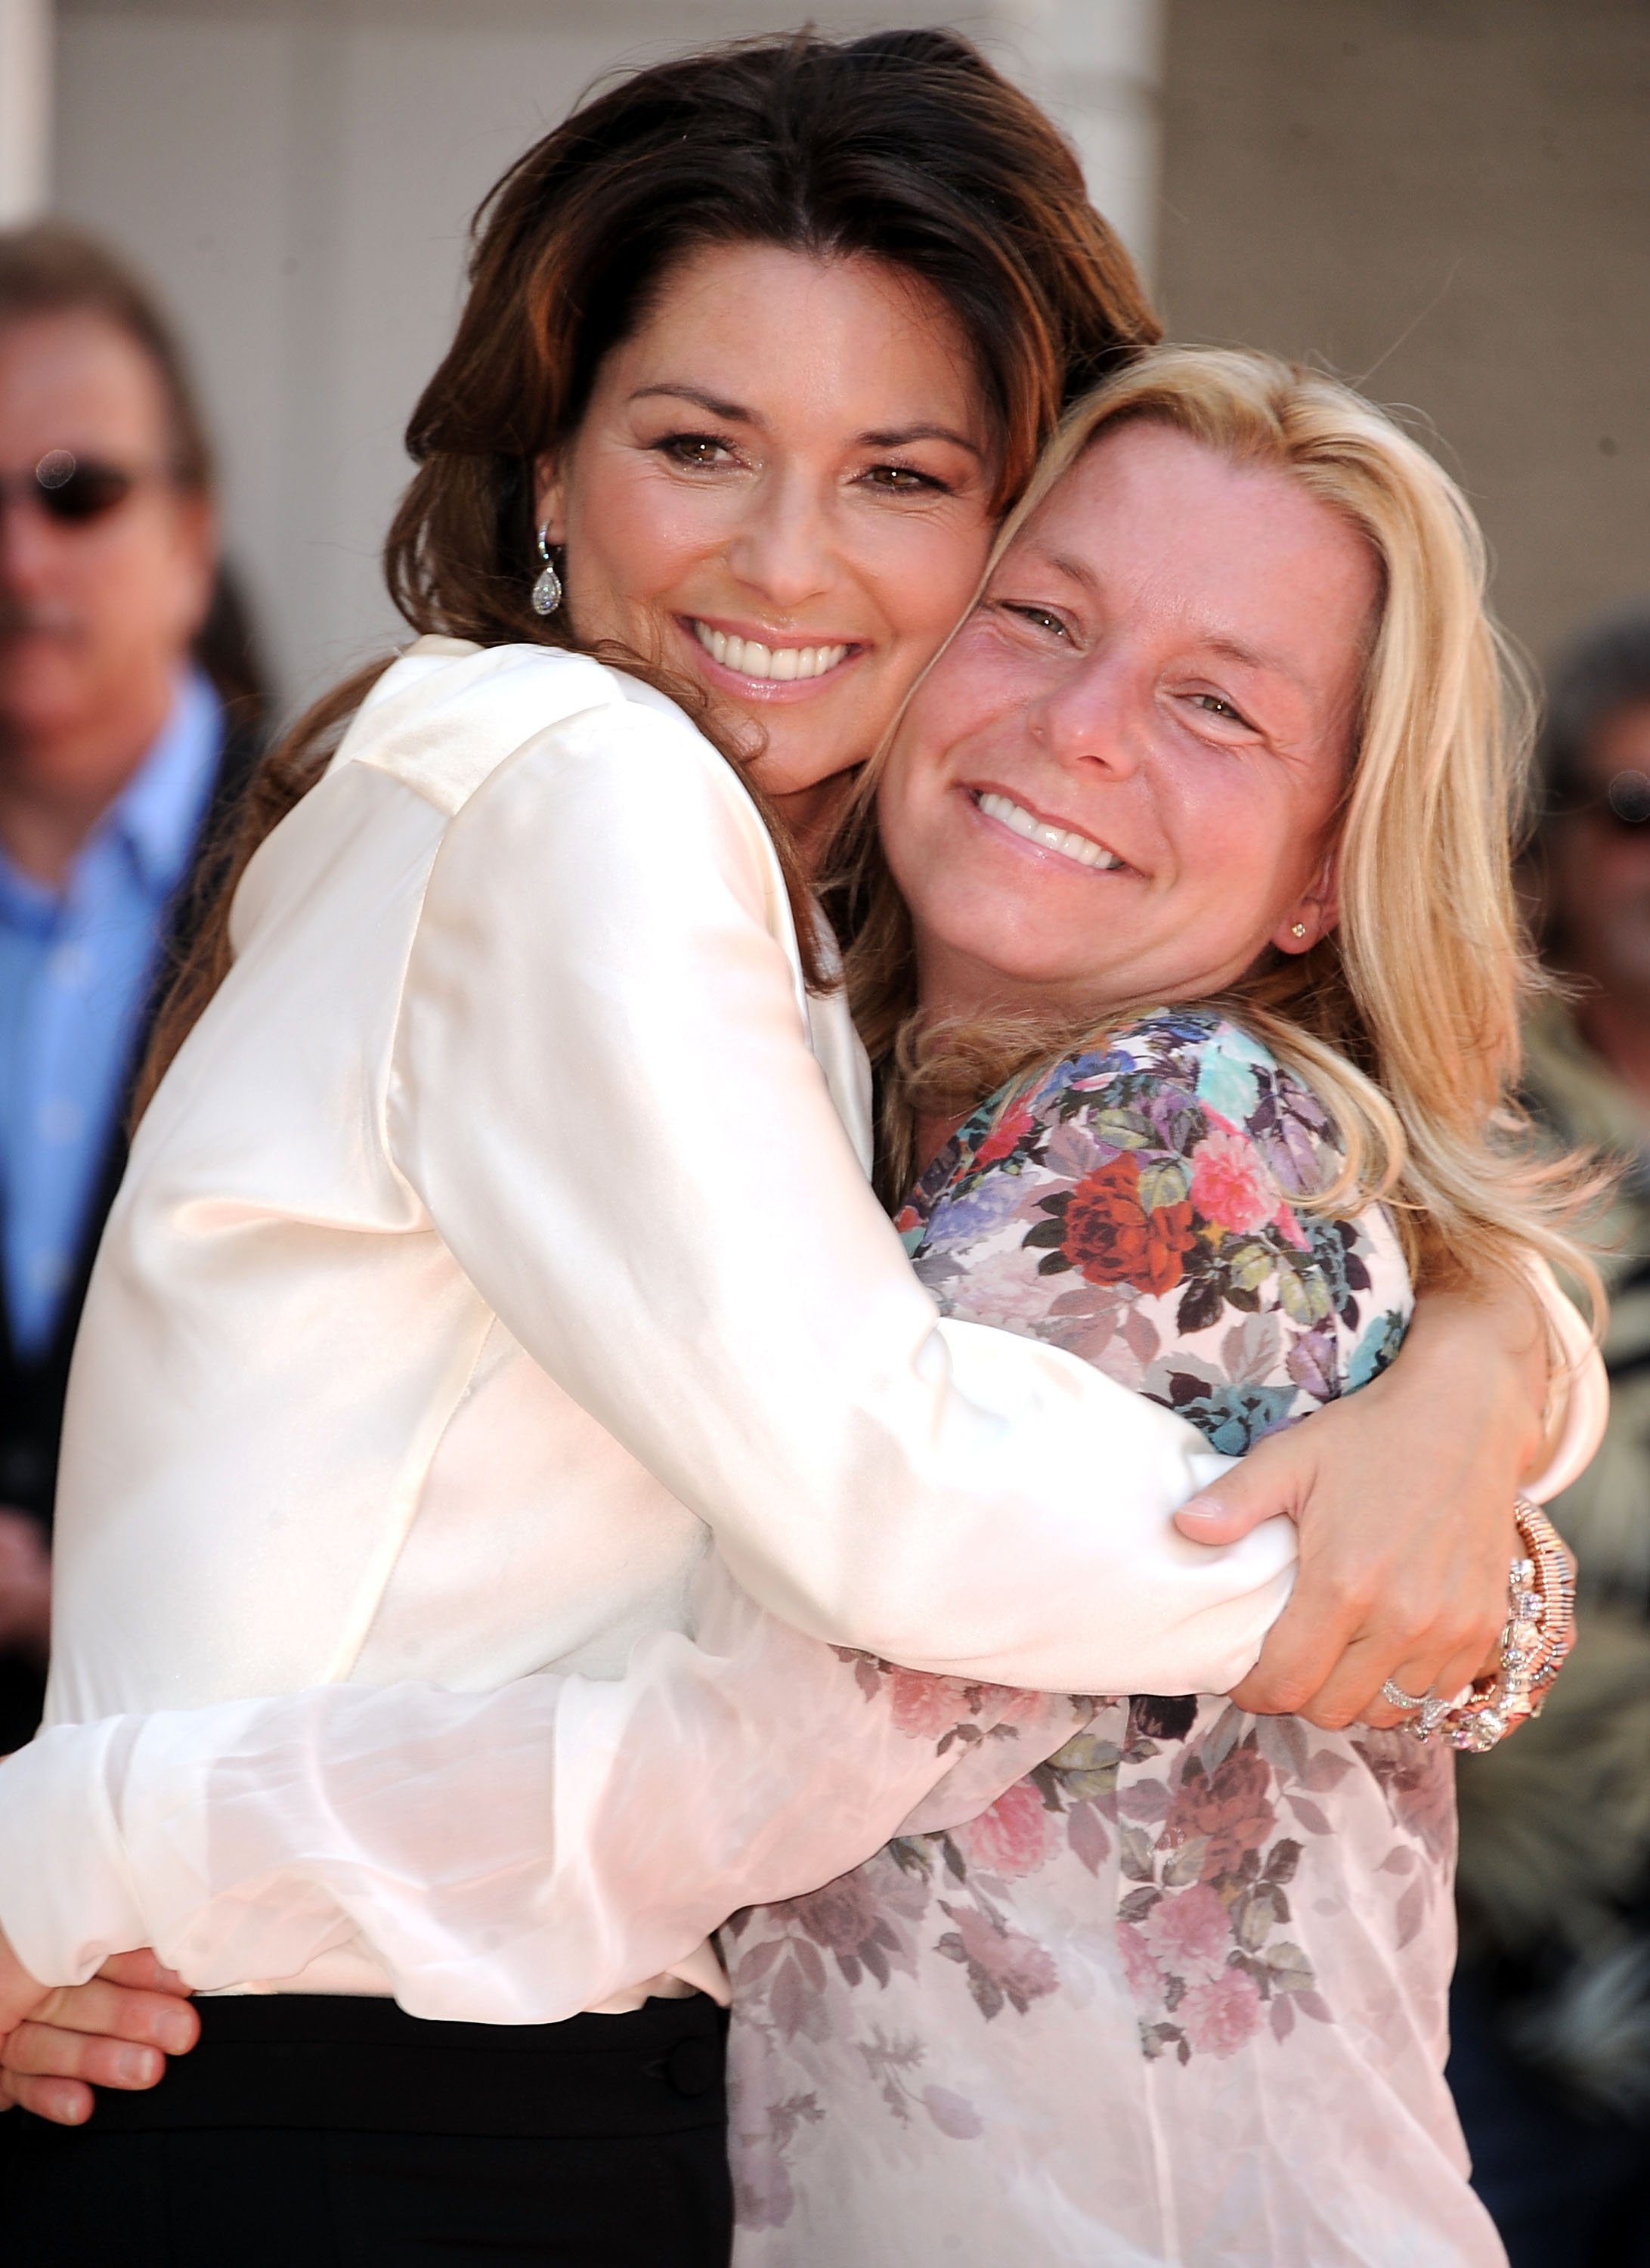 Shania Twain and her sister at the Shania Twain Hollywood Walk of Fame Induction Ceremony in Hollywood, 2011   Photo: Getty Images